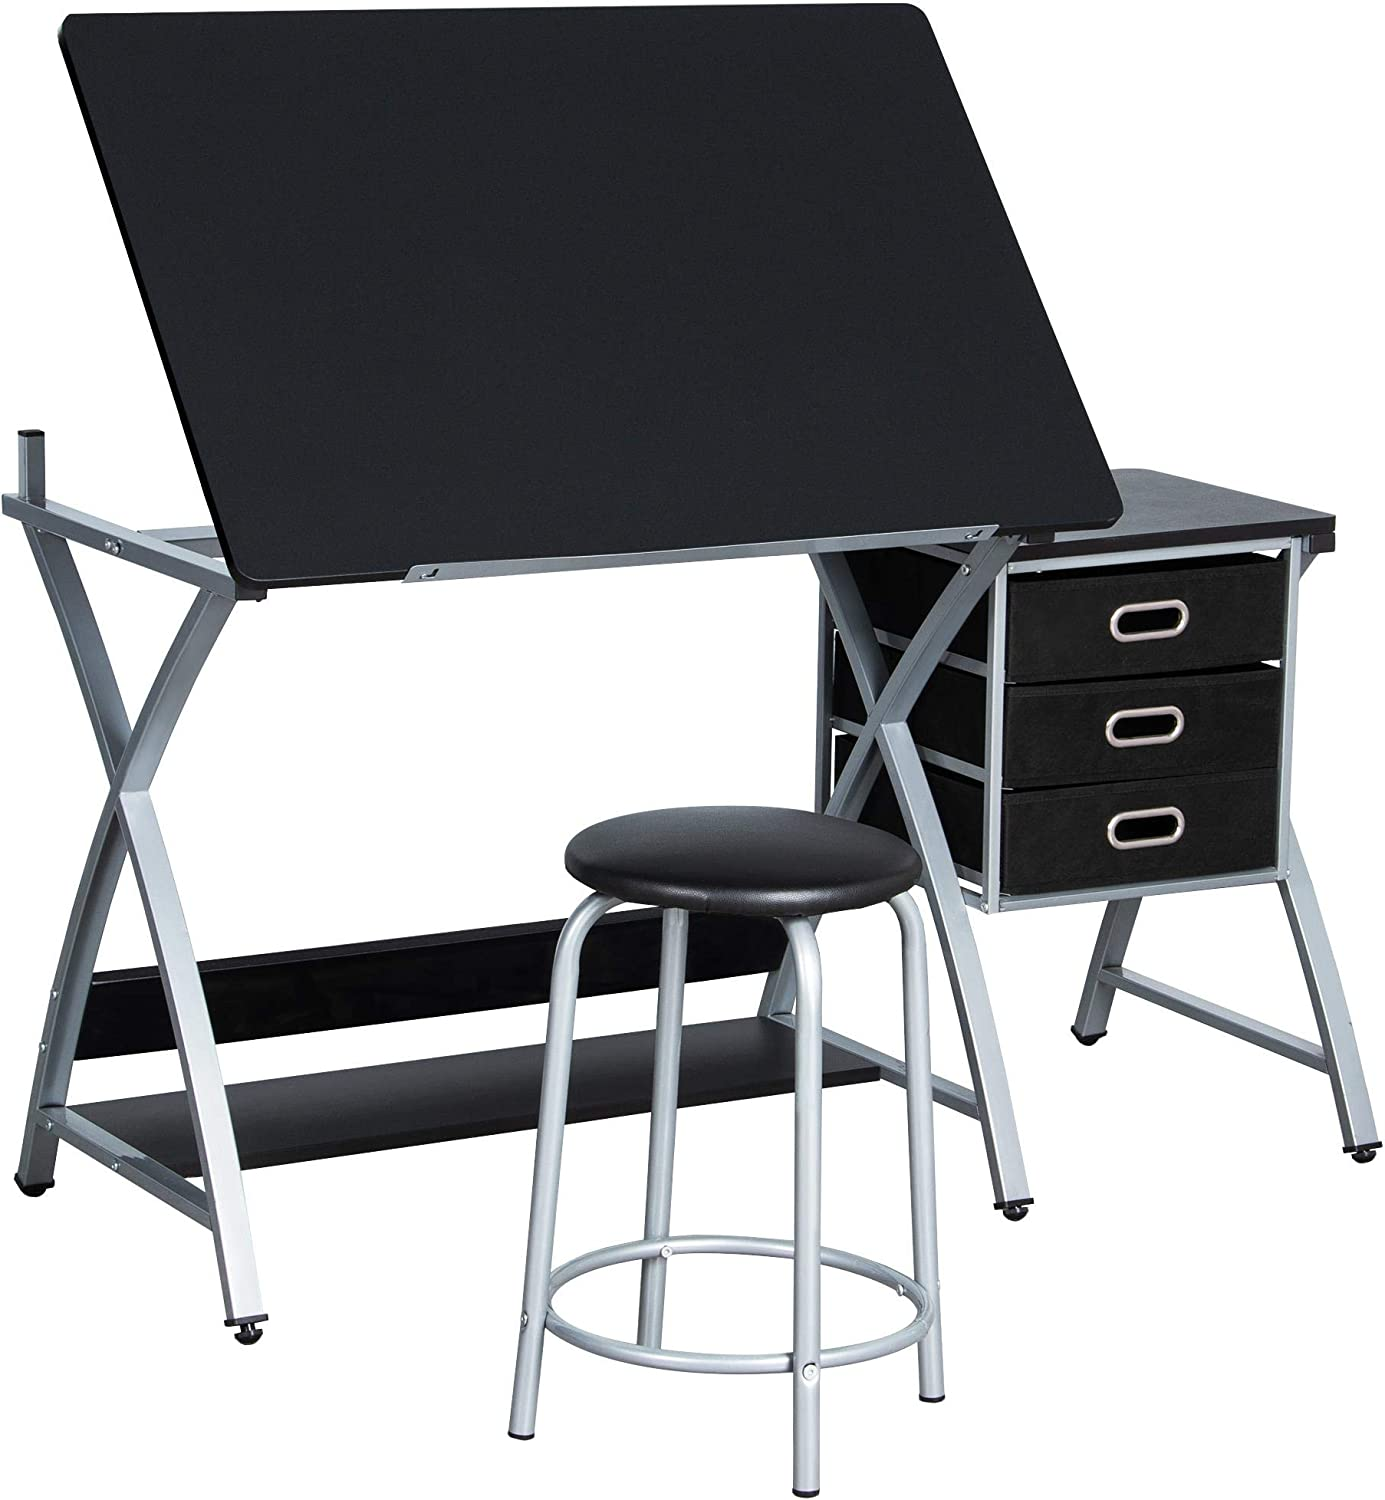 Topeakmart Dallas Mall Drafting Tables Height Drawing Max 67% OFF Desk Adjustable Draft